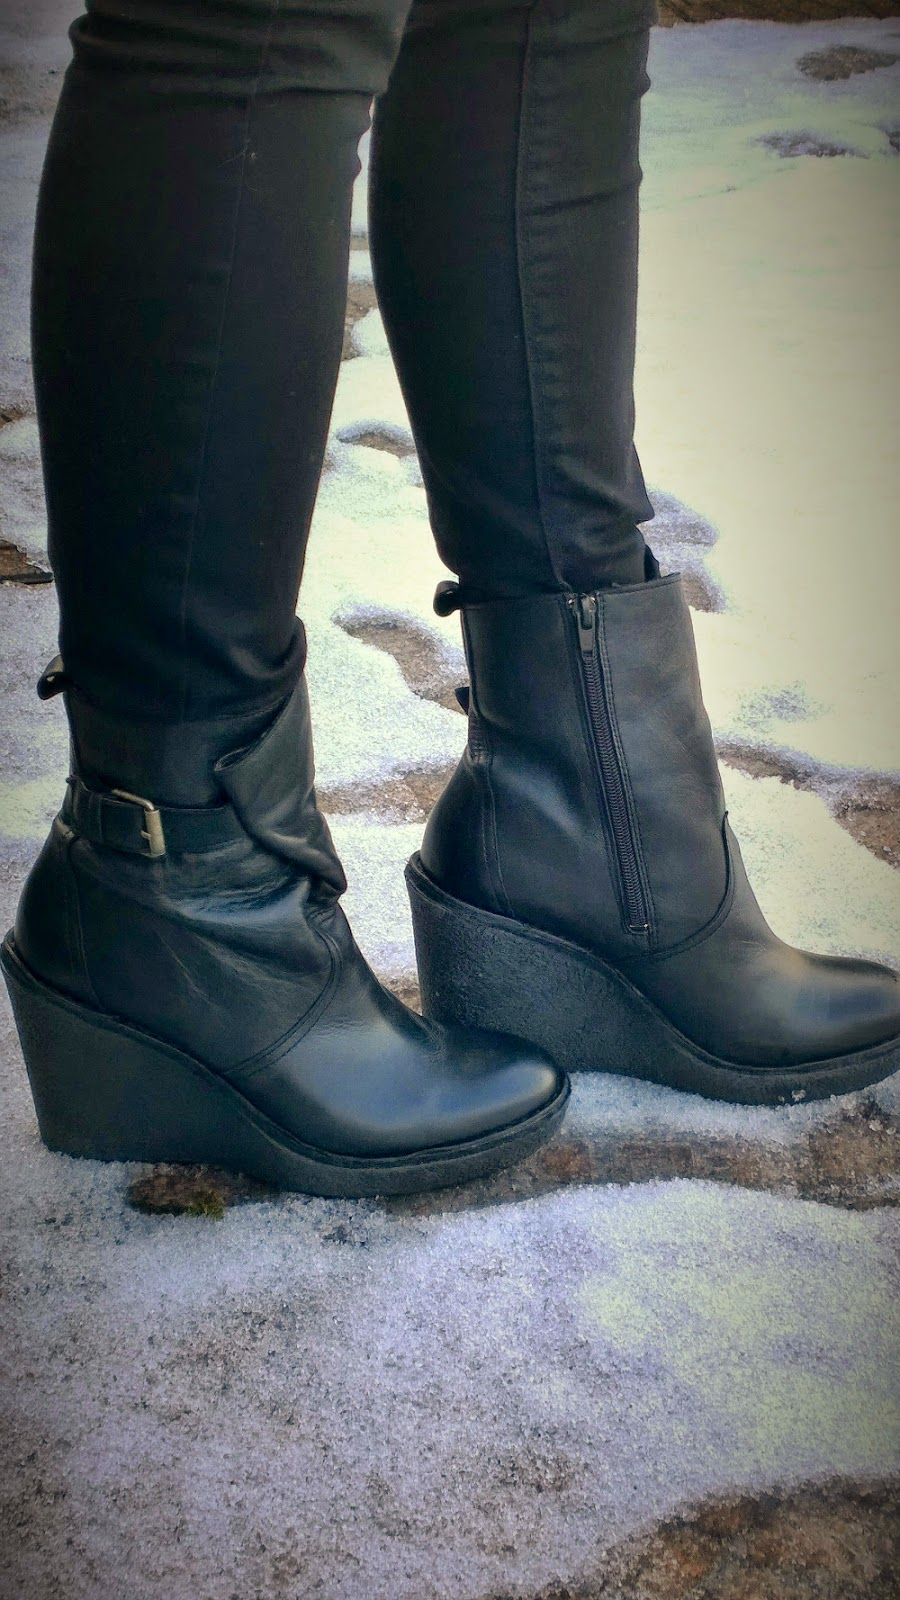 Black Buffalo London wedge boots | Winter is Going || Funky Jungle fashion and personal style blog